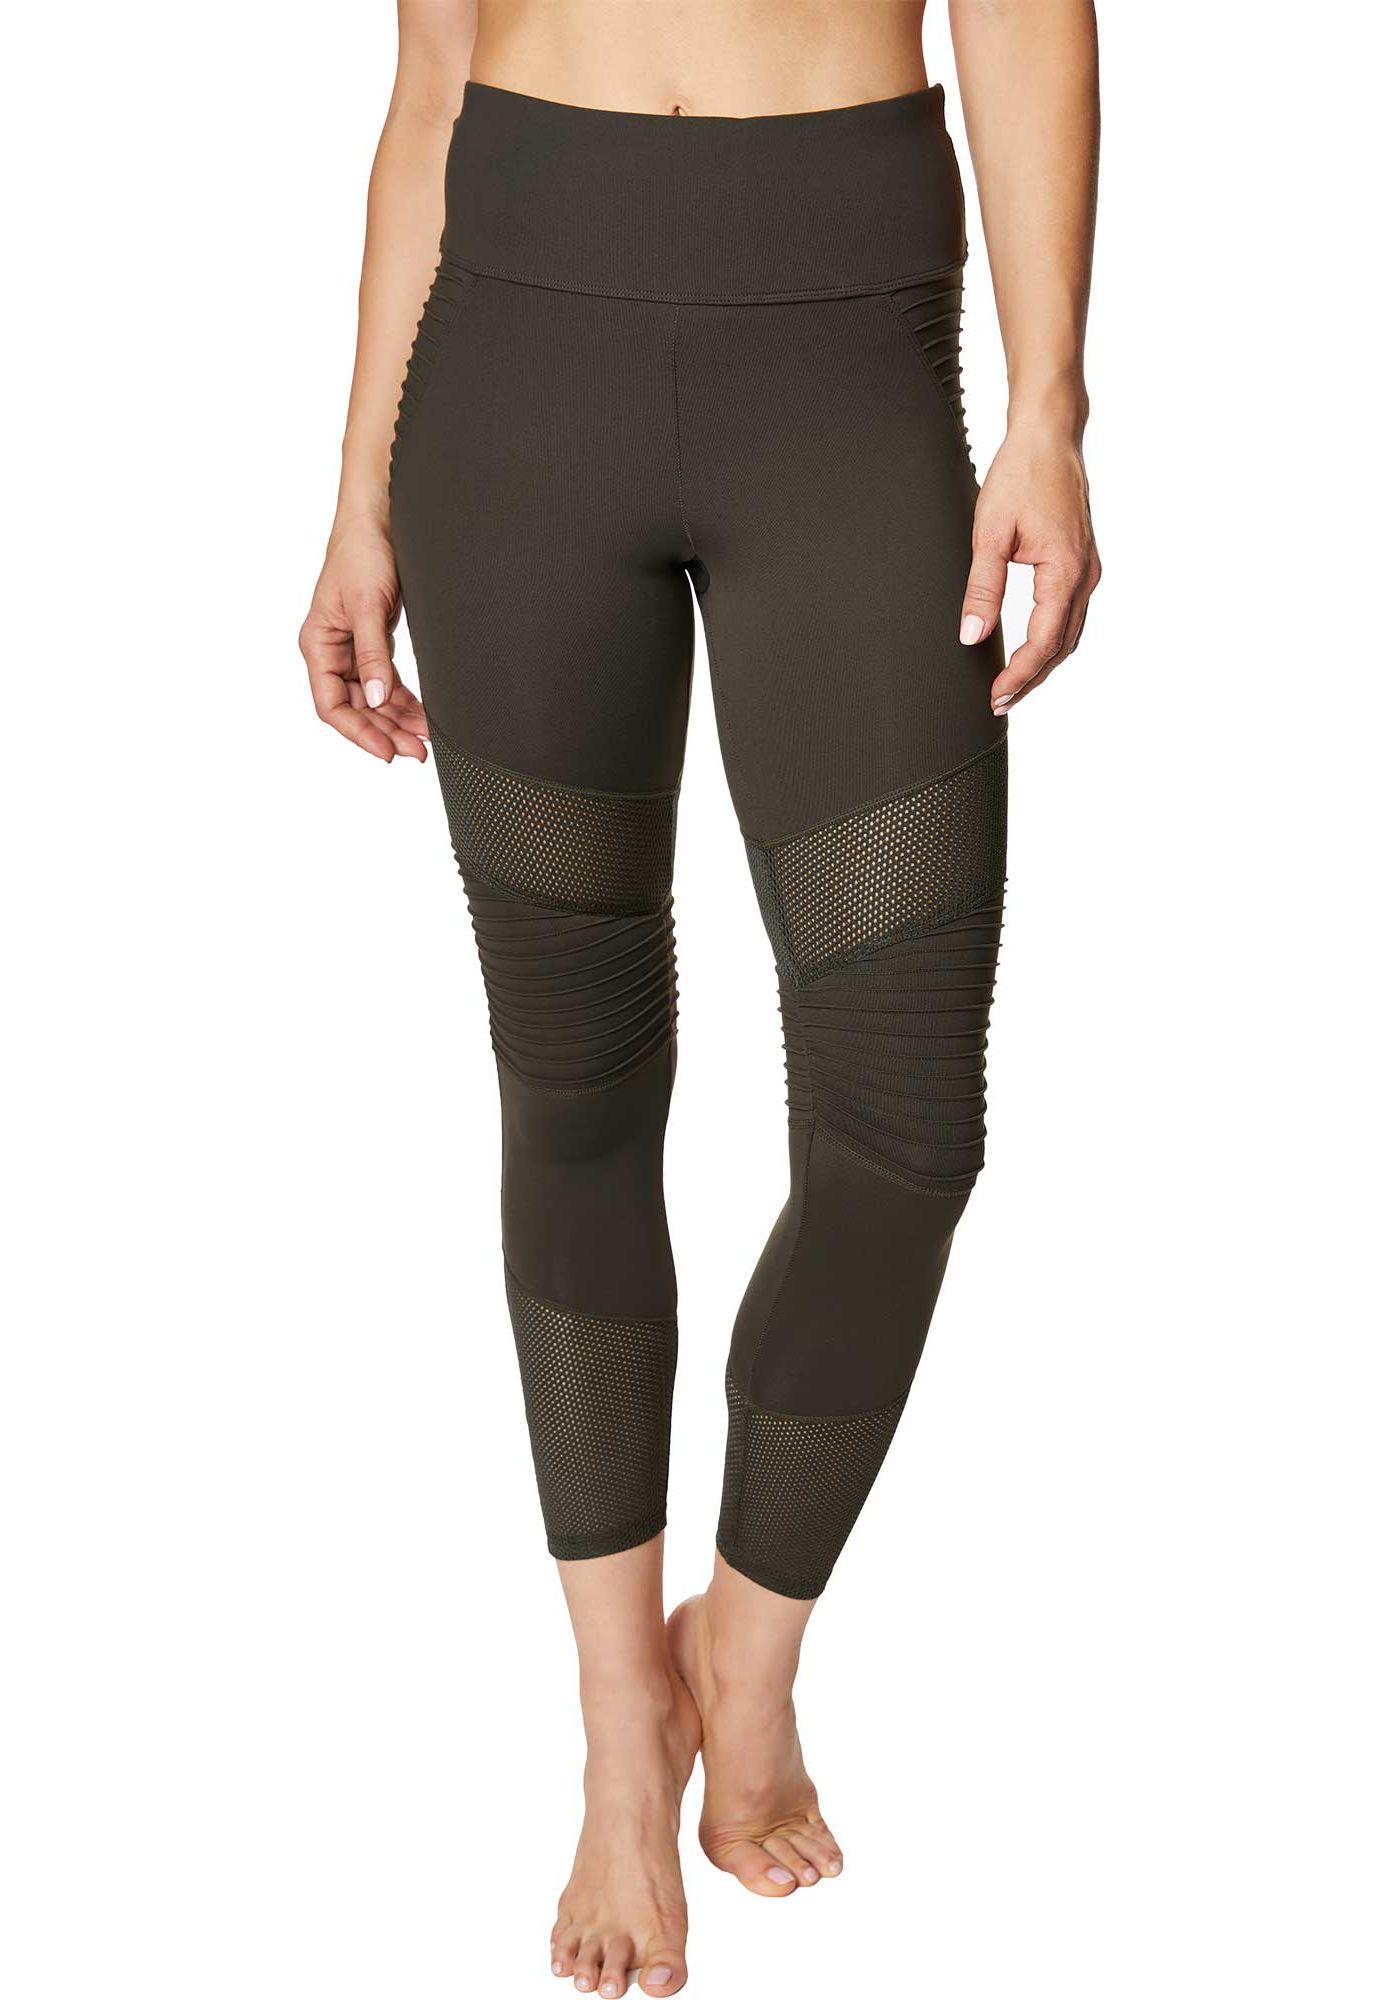 Betsey Johnson Performance Women's Pintuck Mesh Panel 7/8 Leggings